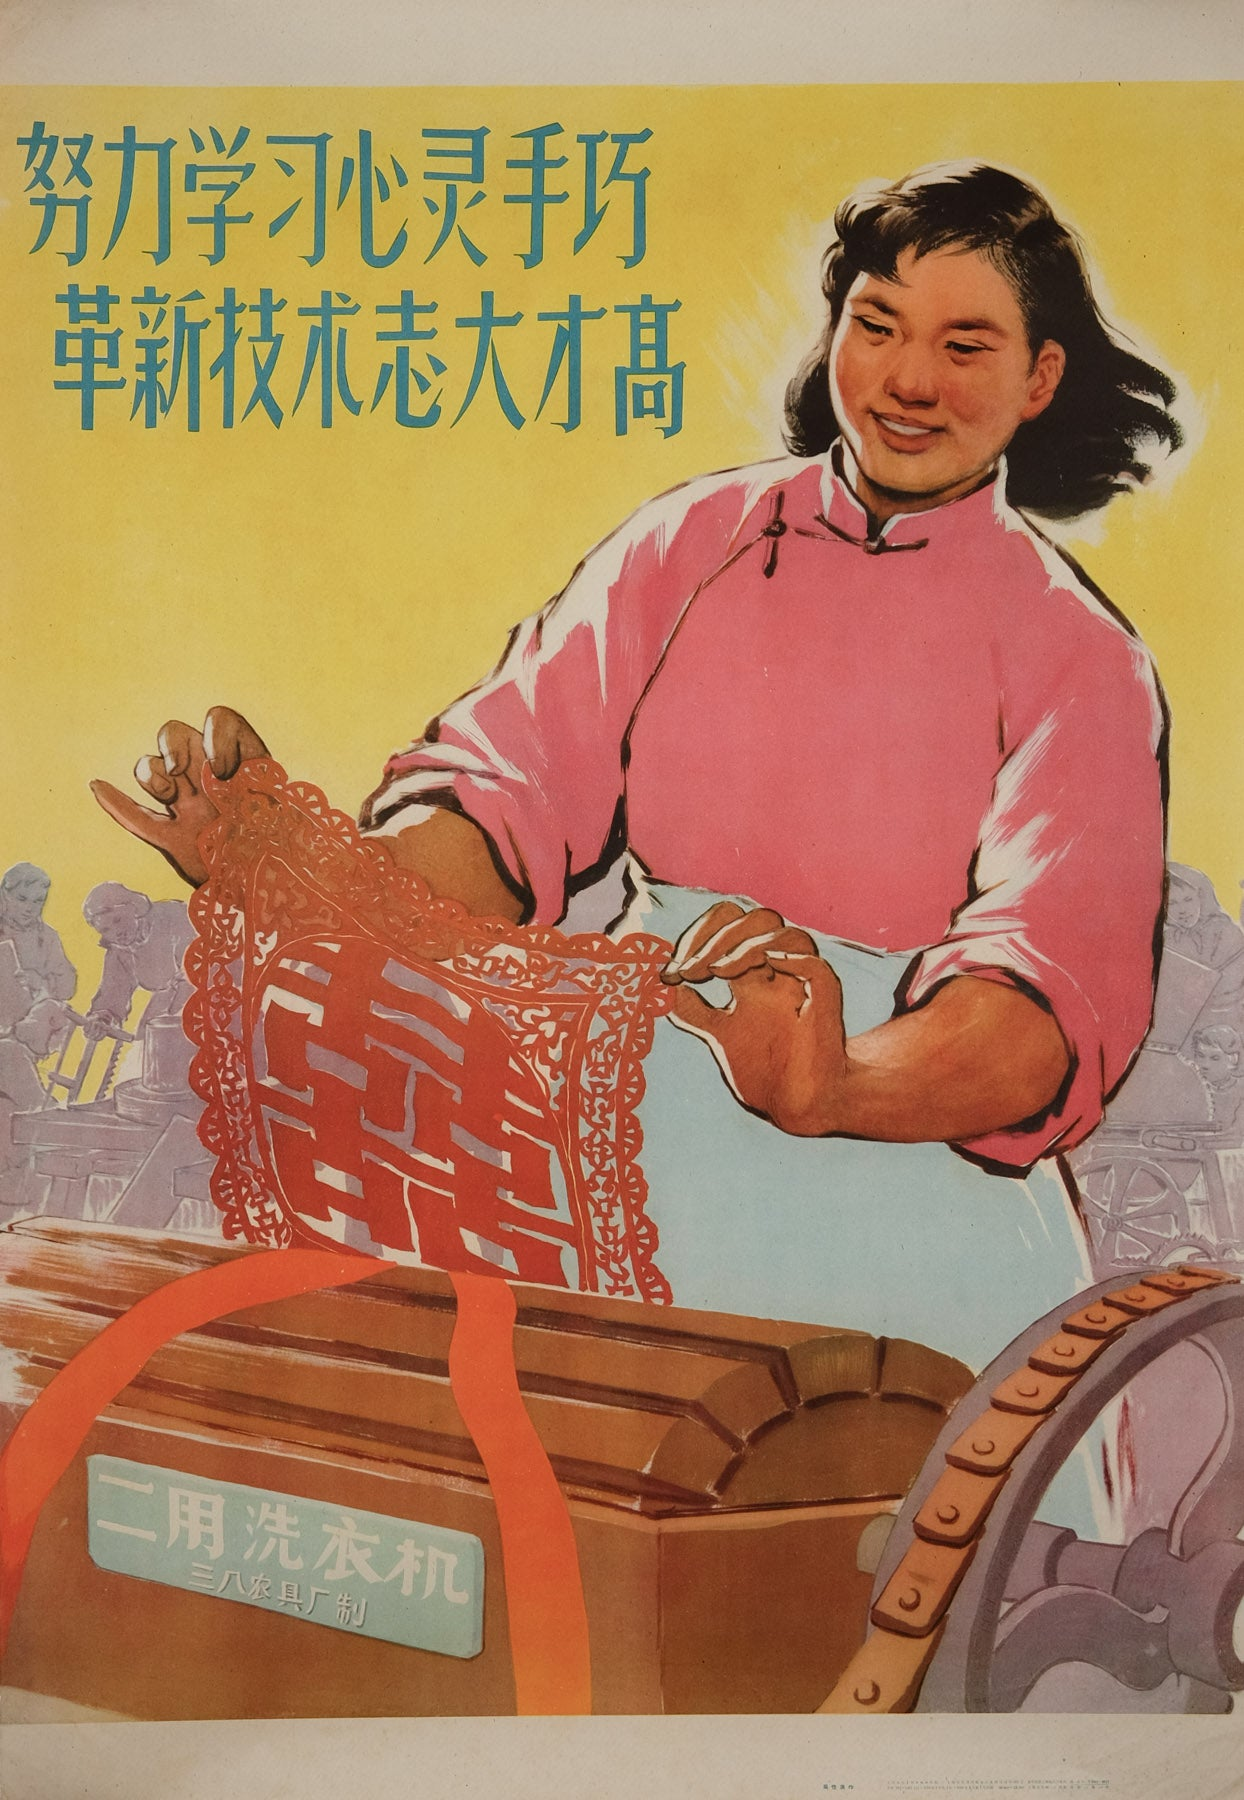 original vintage 1959 Chinese communist propaganda poster Study hard to become capable and dexterous, revolutionary technologies enable great ambition and talent by Wu Xingqing